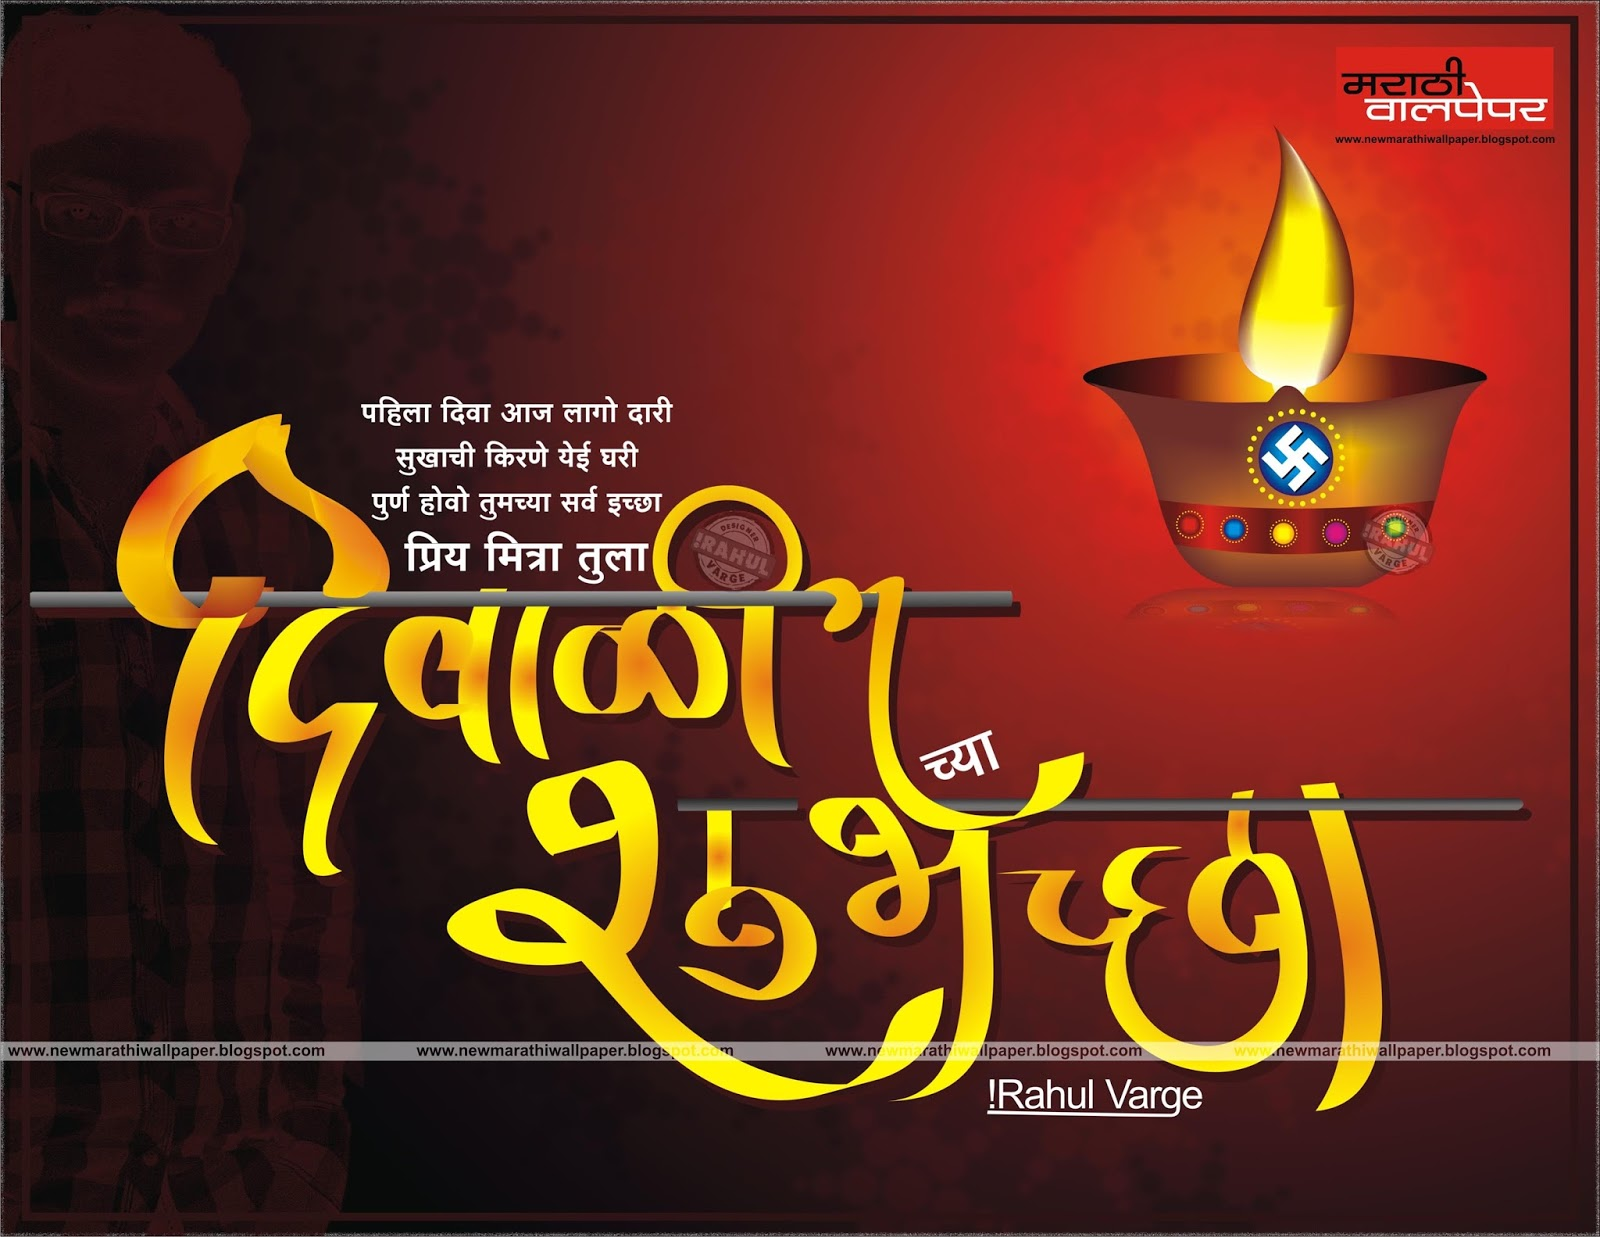 Diwali marathi greetings hd images diwali marathi greetings m4hsunfo Gallery